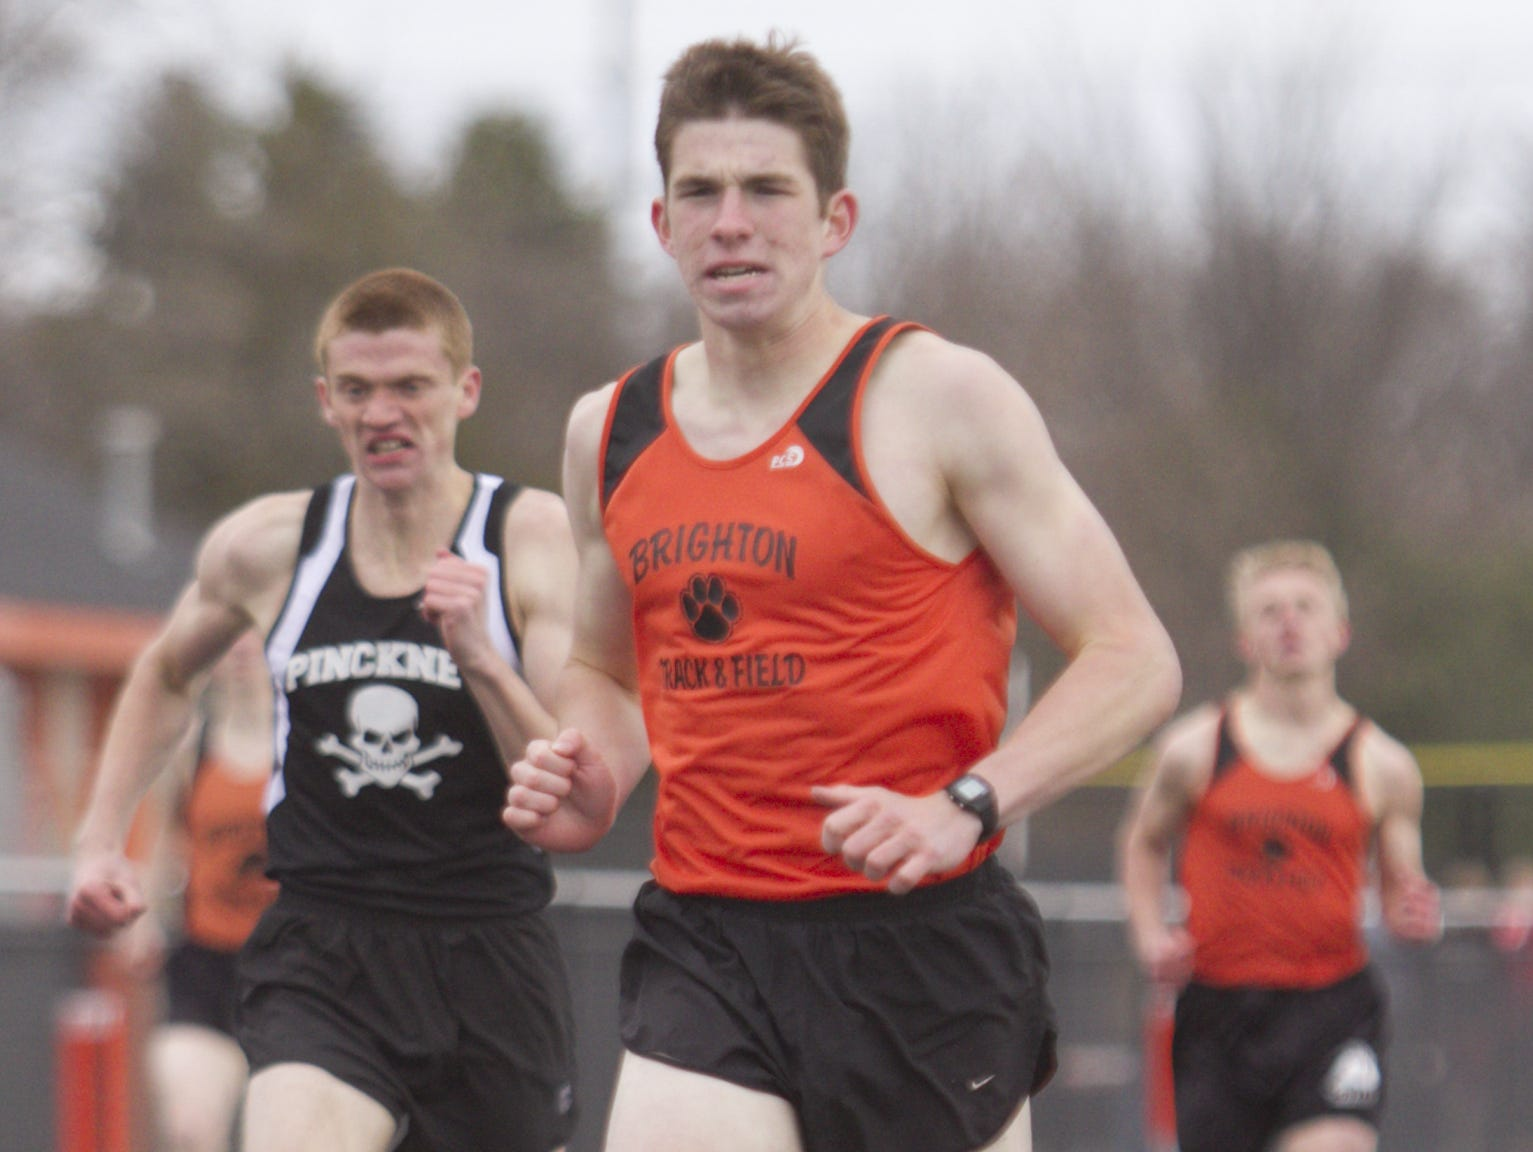 Brighton's Garrett McPeek took first in the 800- and 1600-meter runs Tuesday in what currently stands as a 64-64 tie against Hartland.